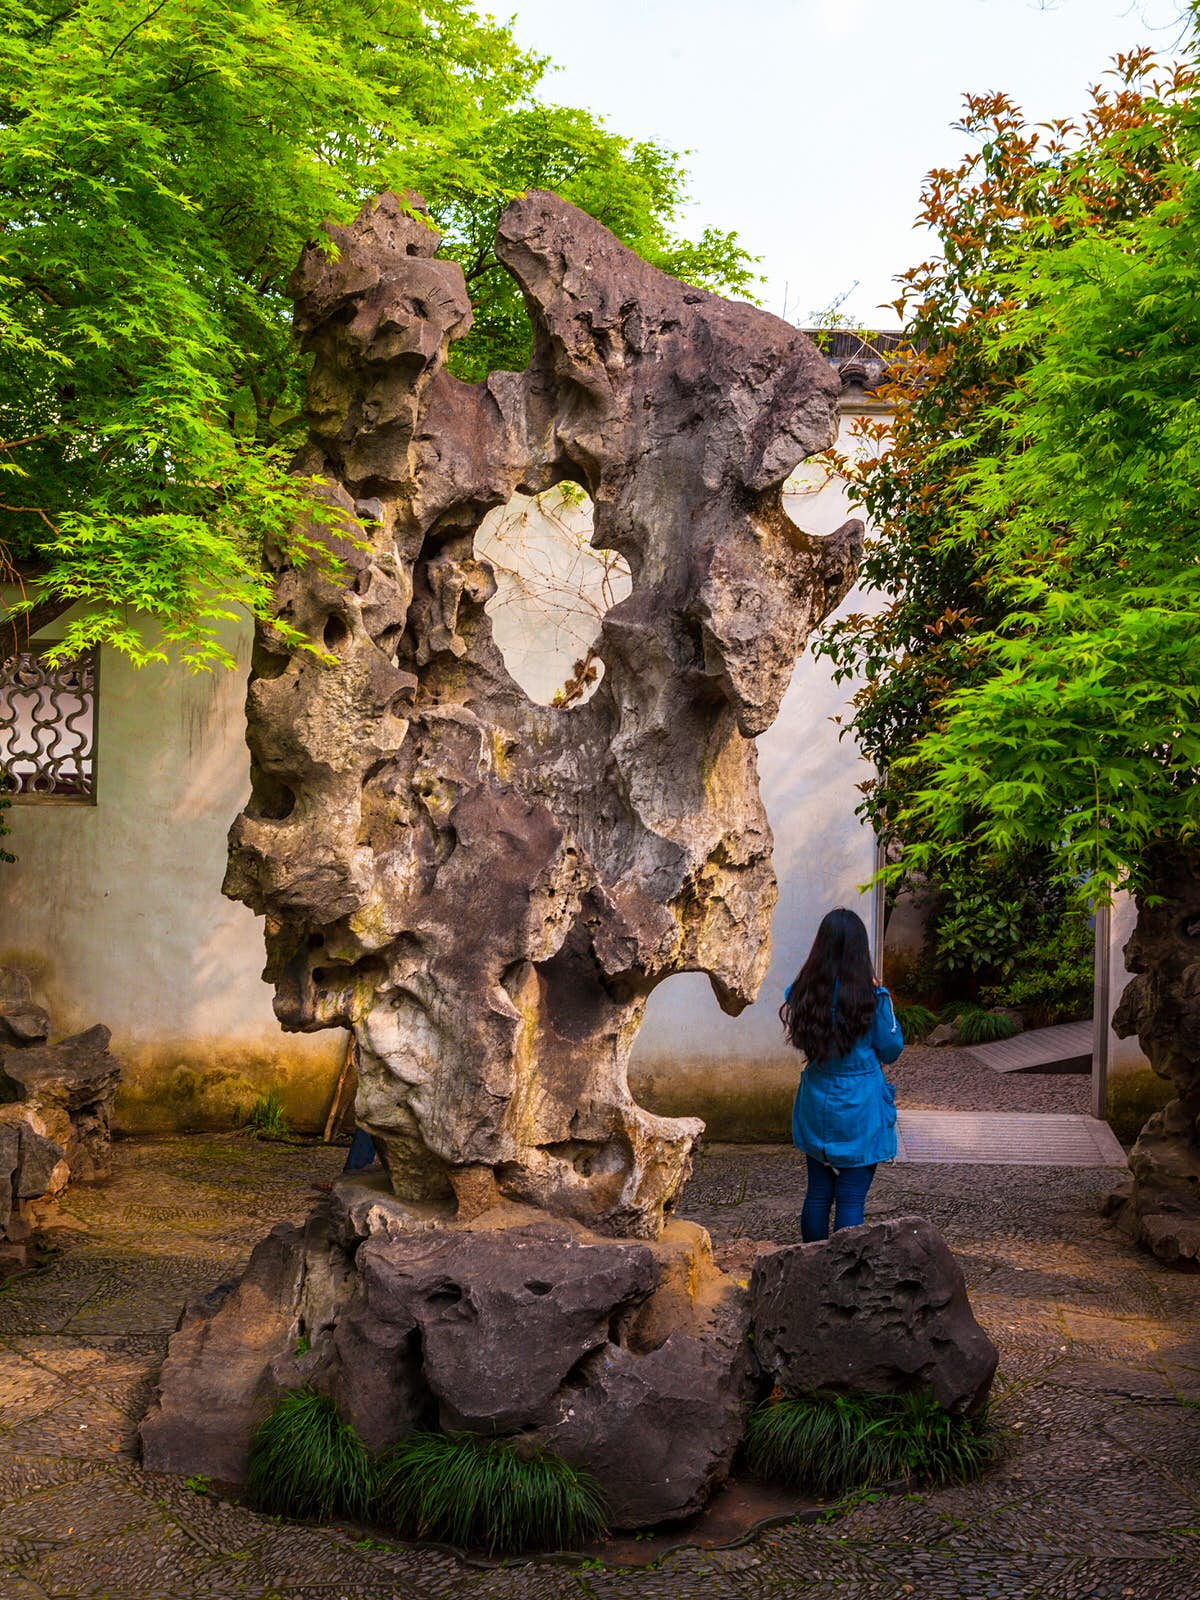 A large, gnarled rock formation with a hole in the middle. The Garden to Linger In is a good place to see giant, bizarrely shaped rock stele © Meiqianbao / Shutterstock